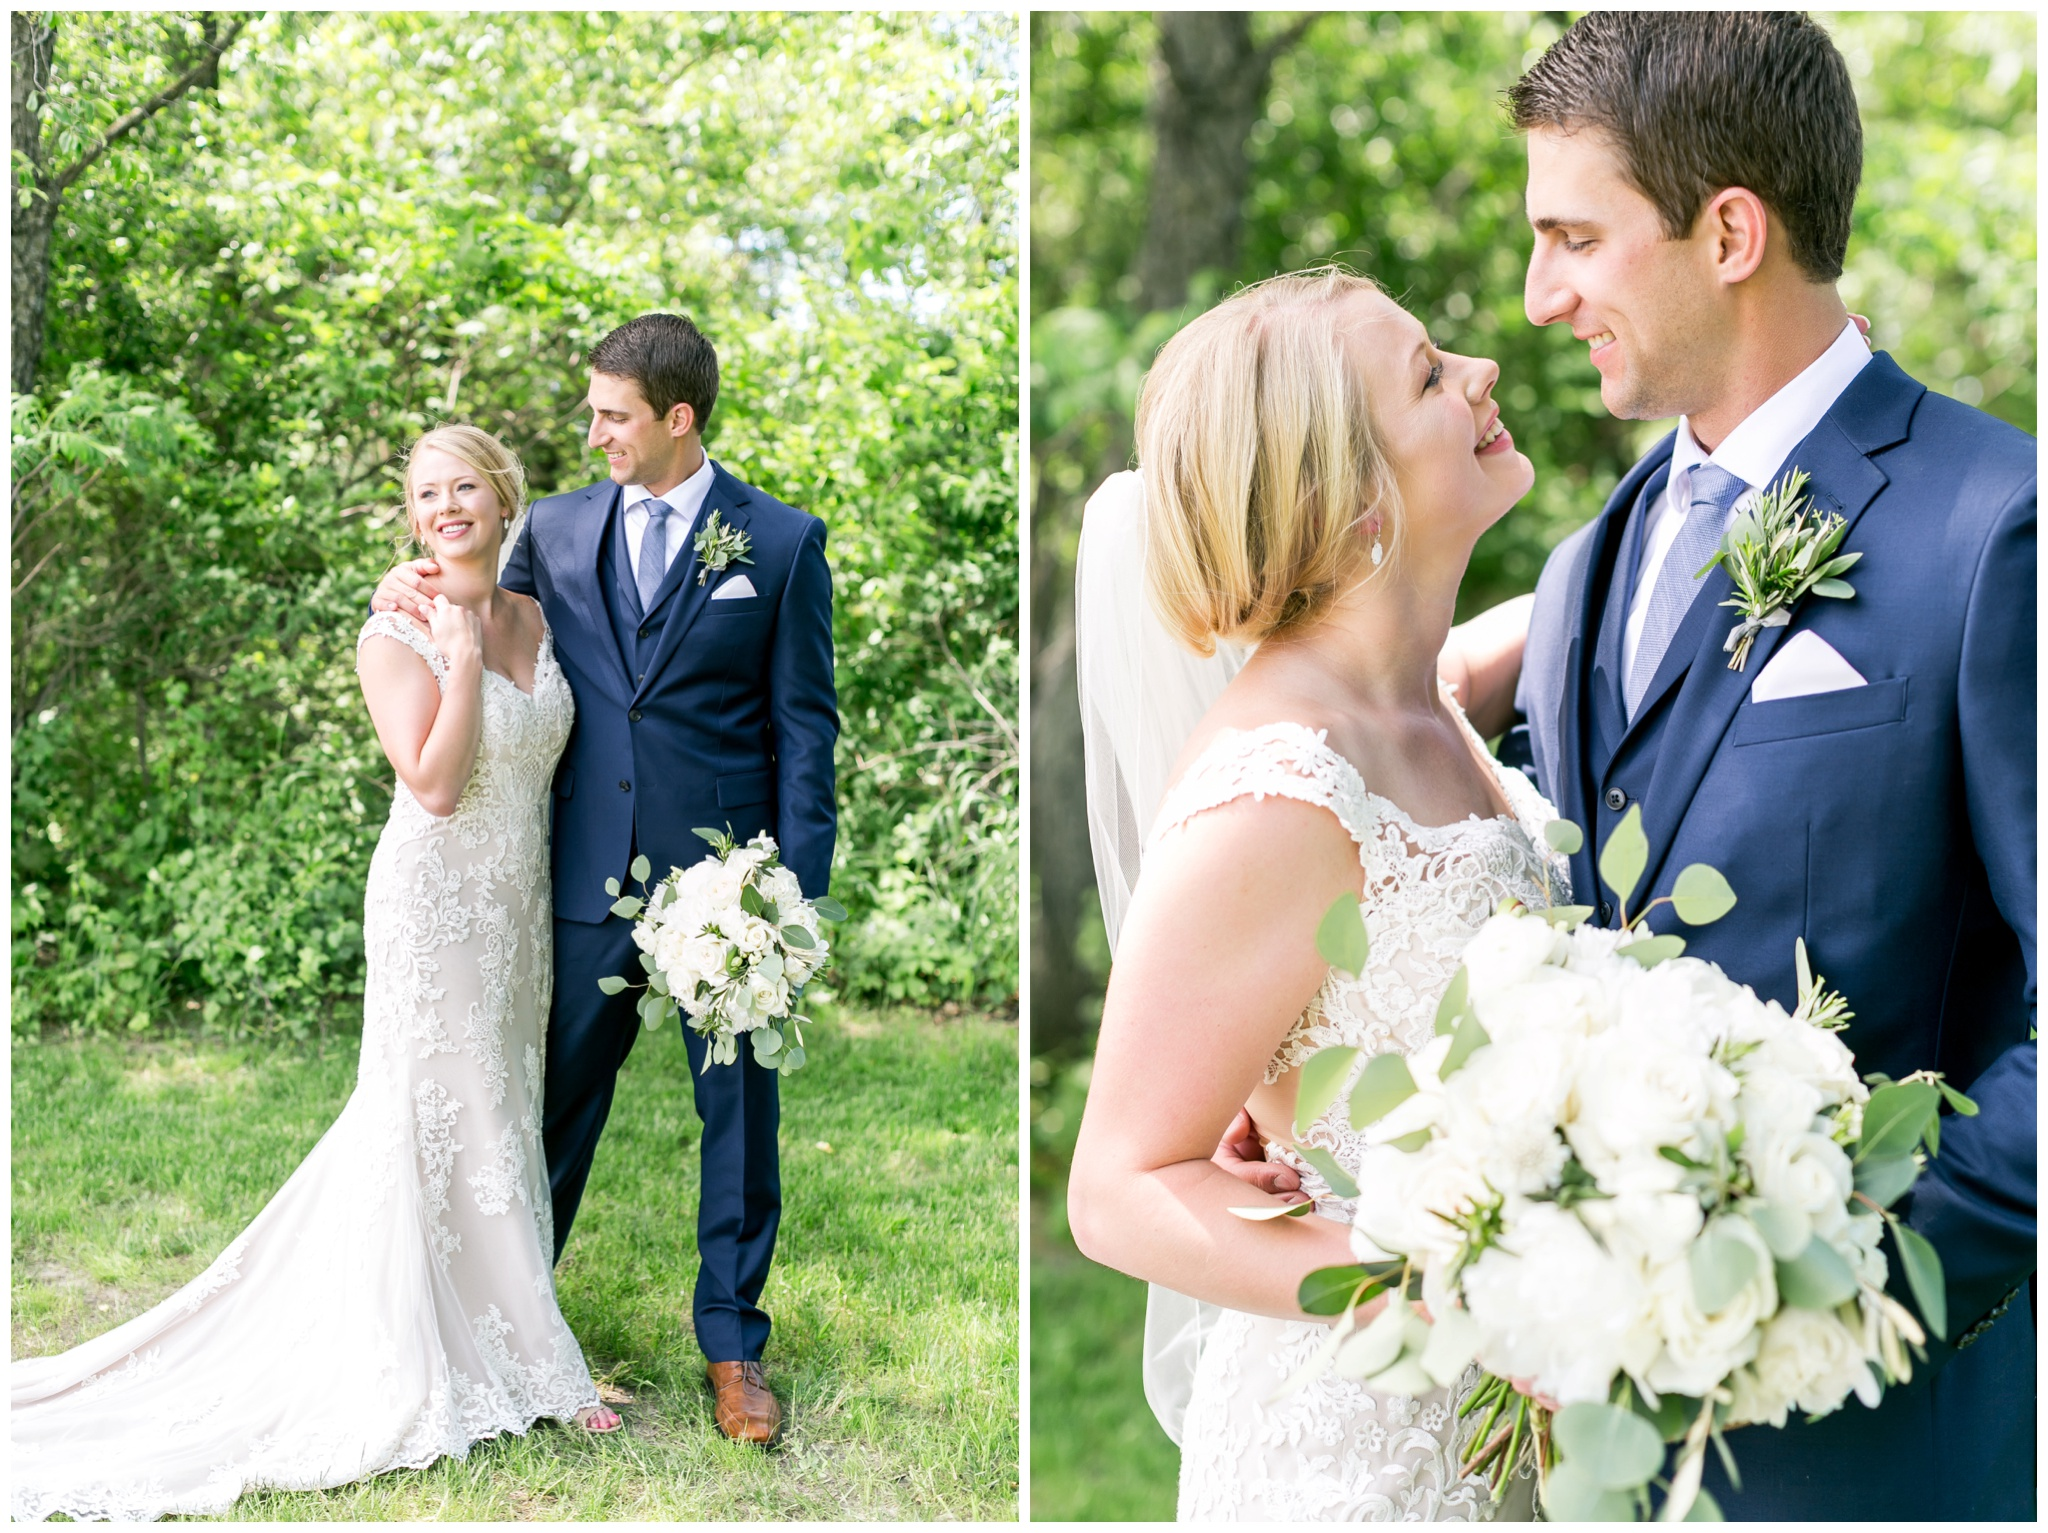 private_estate_wedding_stoughton_wisconsin_wedding_caynay_photo_3844.jpg